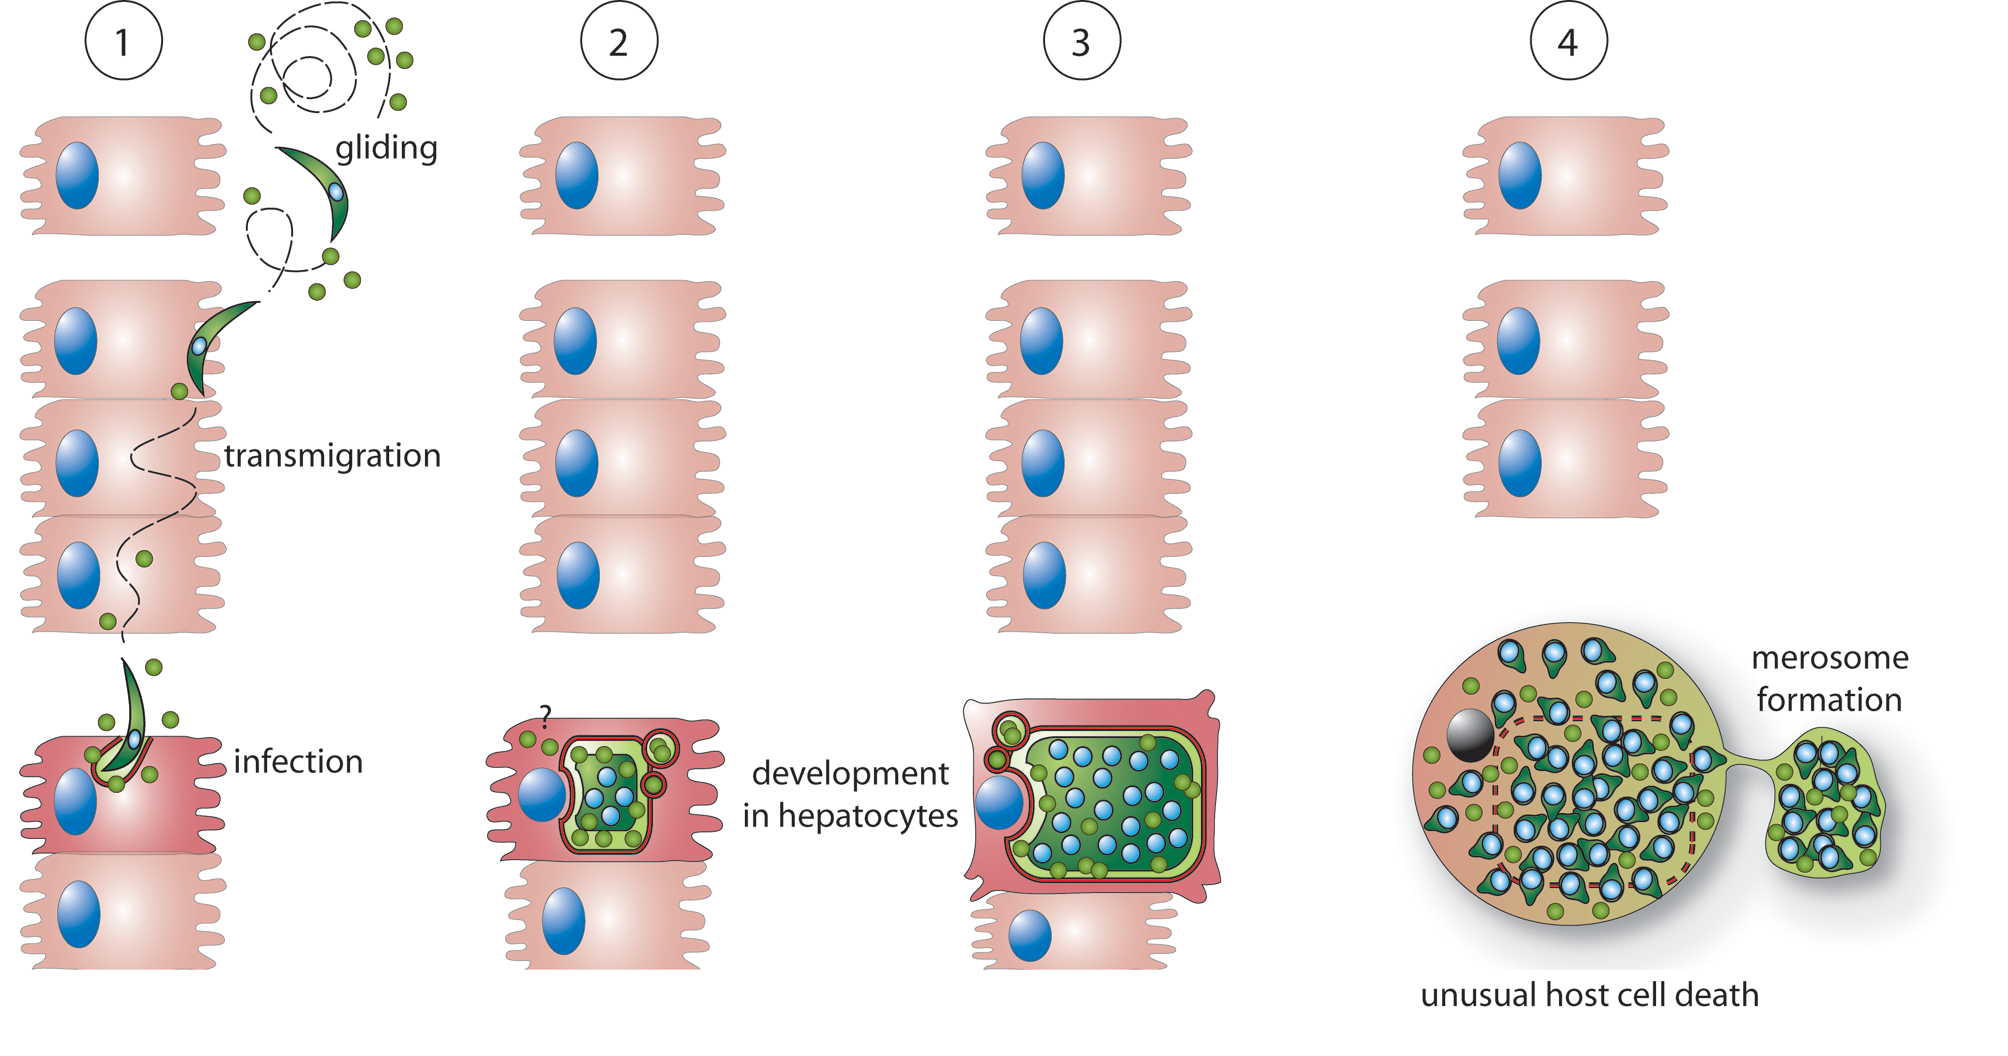 Possible roles of PbICP during the exoerythrocytic development of <i>P. berghei in vitro</i>.